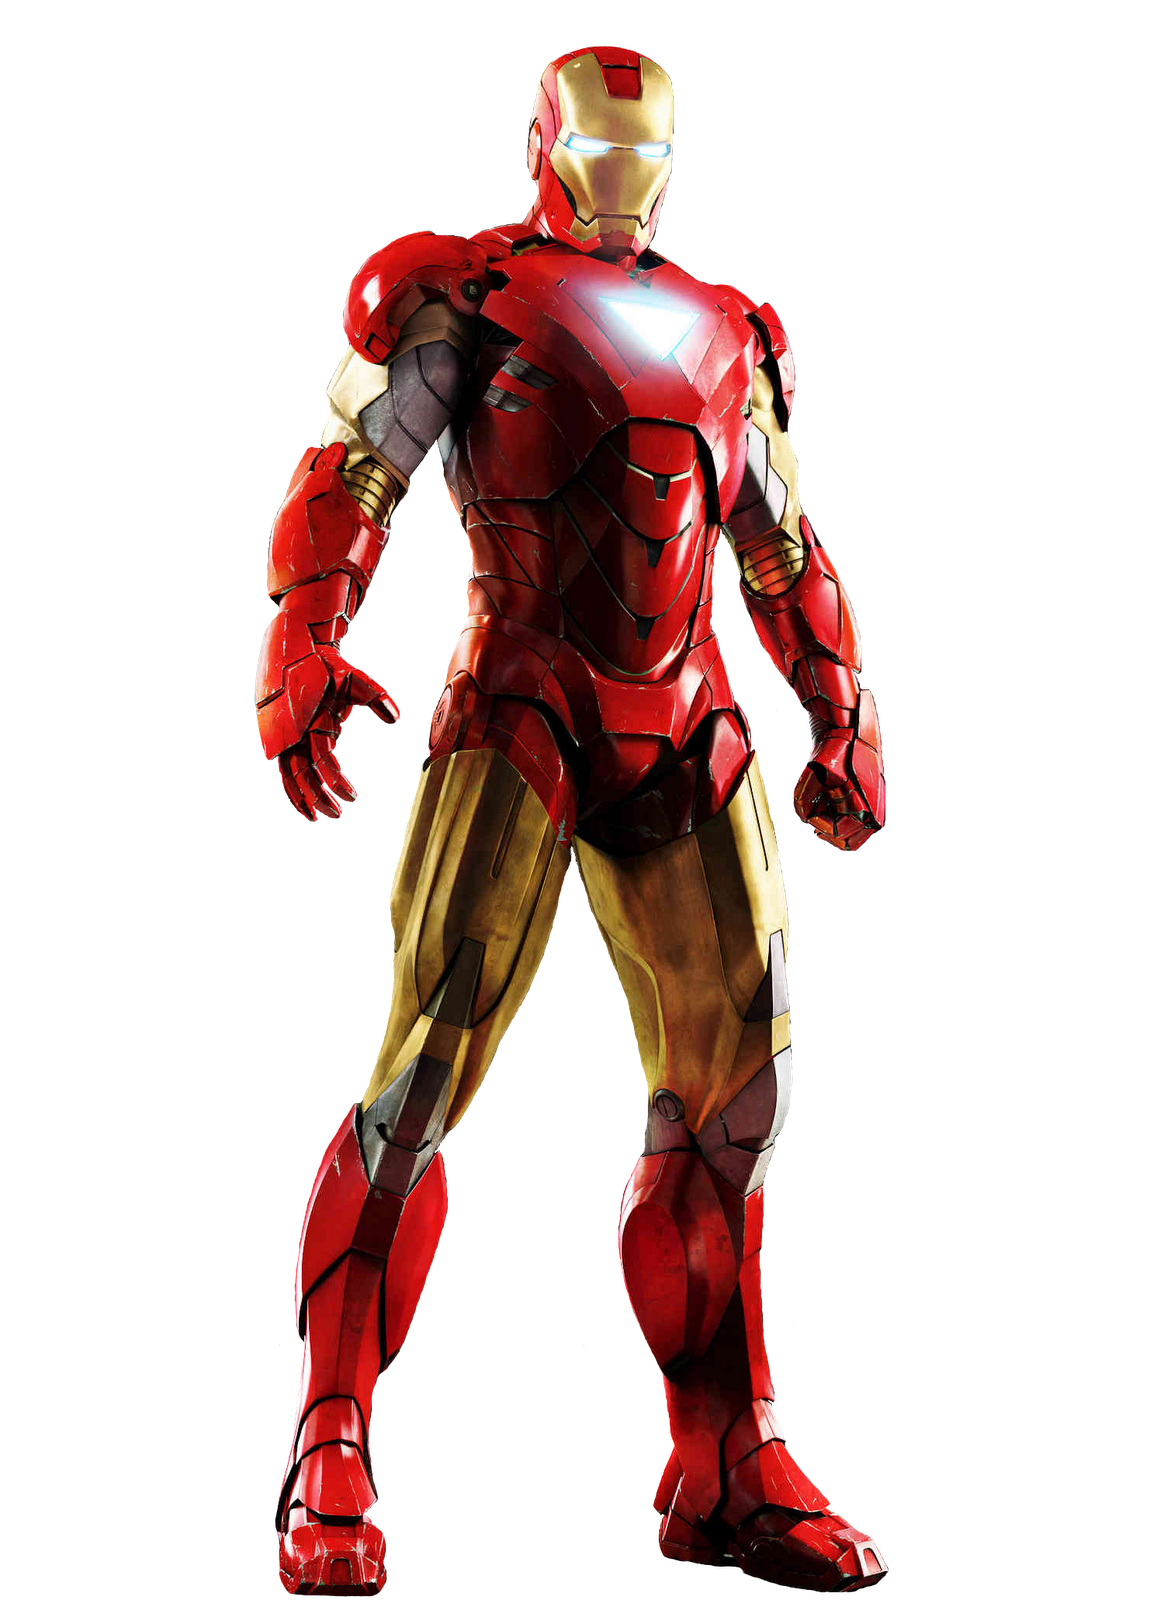 Iron man 2 clipart freeuse library Ironman PNG images free download freeuse library